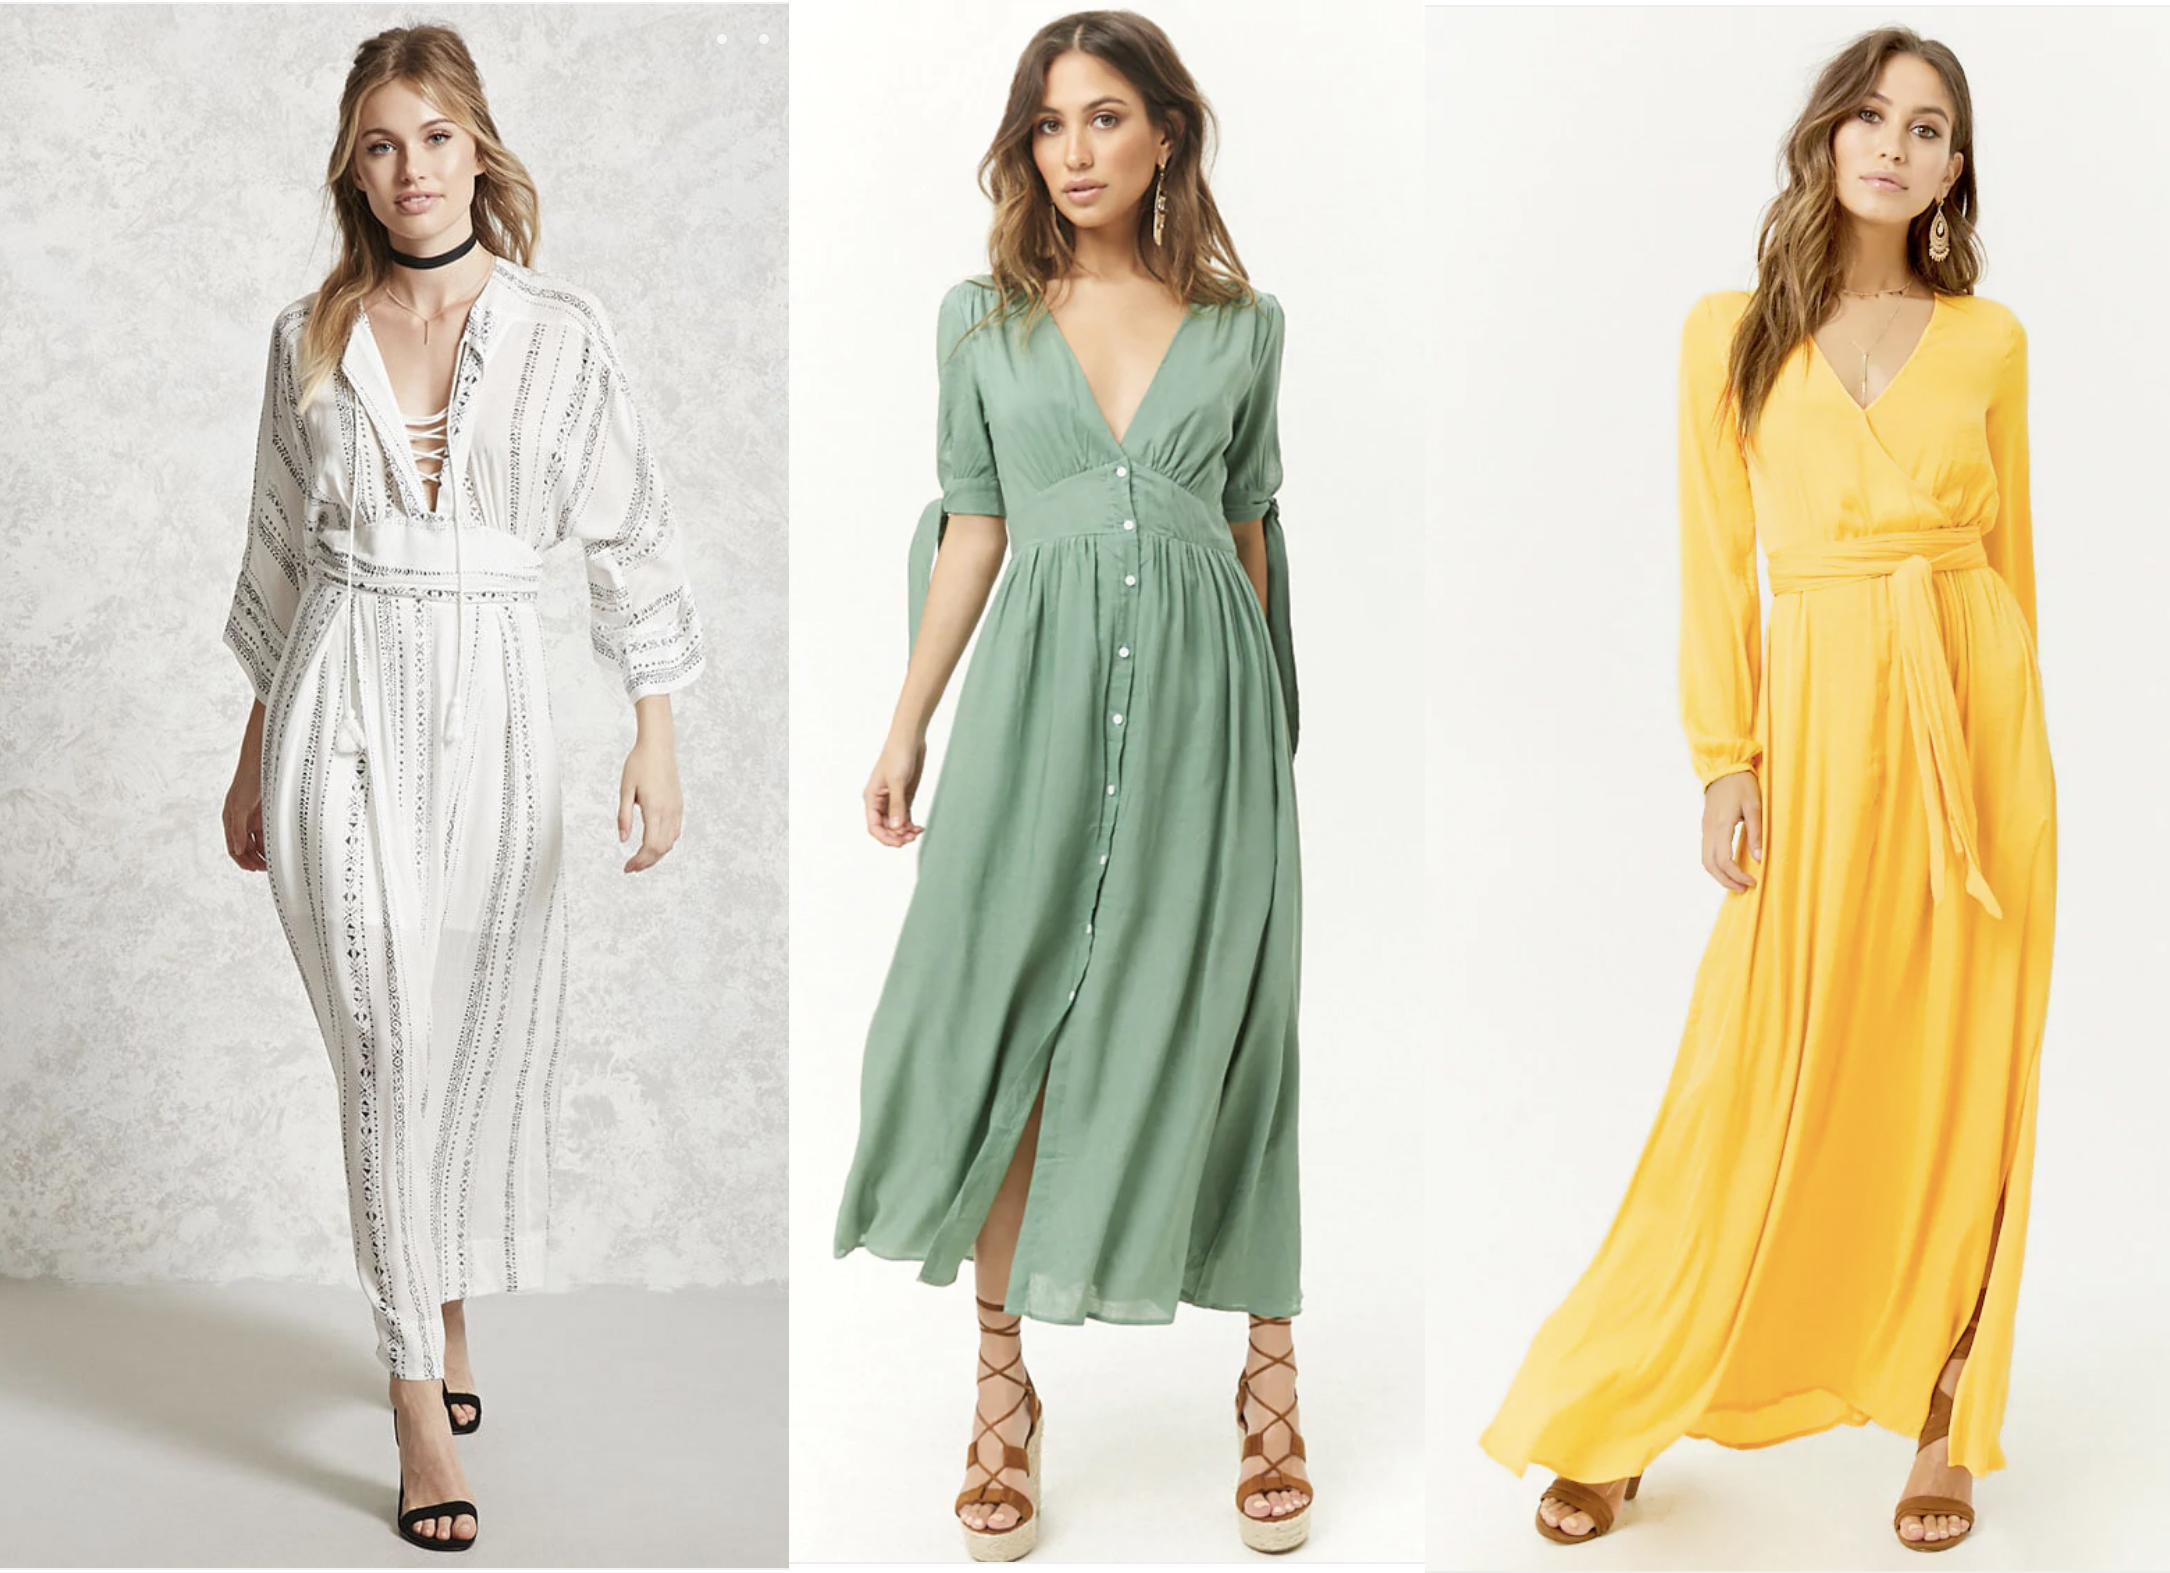 Forever 21 - I know, this might be a shocking suggestion….but they have some really cute maxi dresses right now!